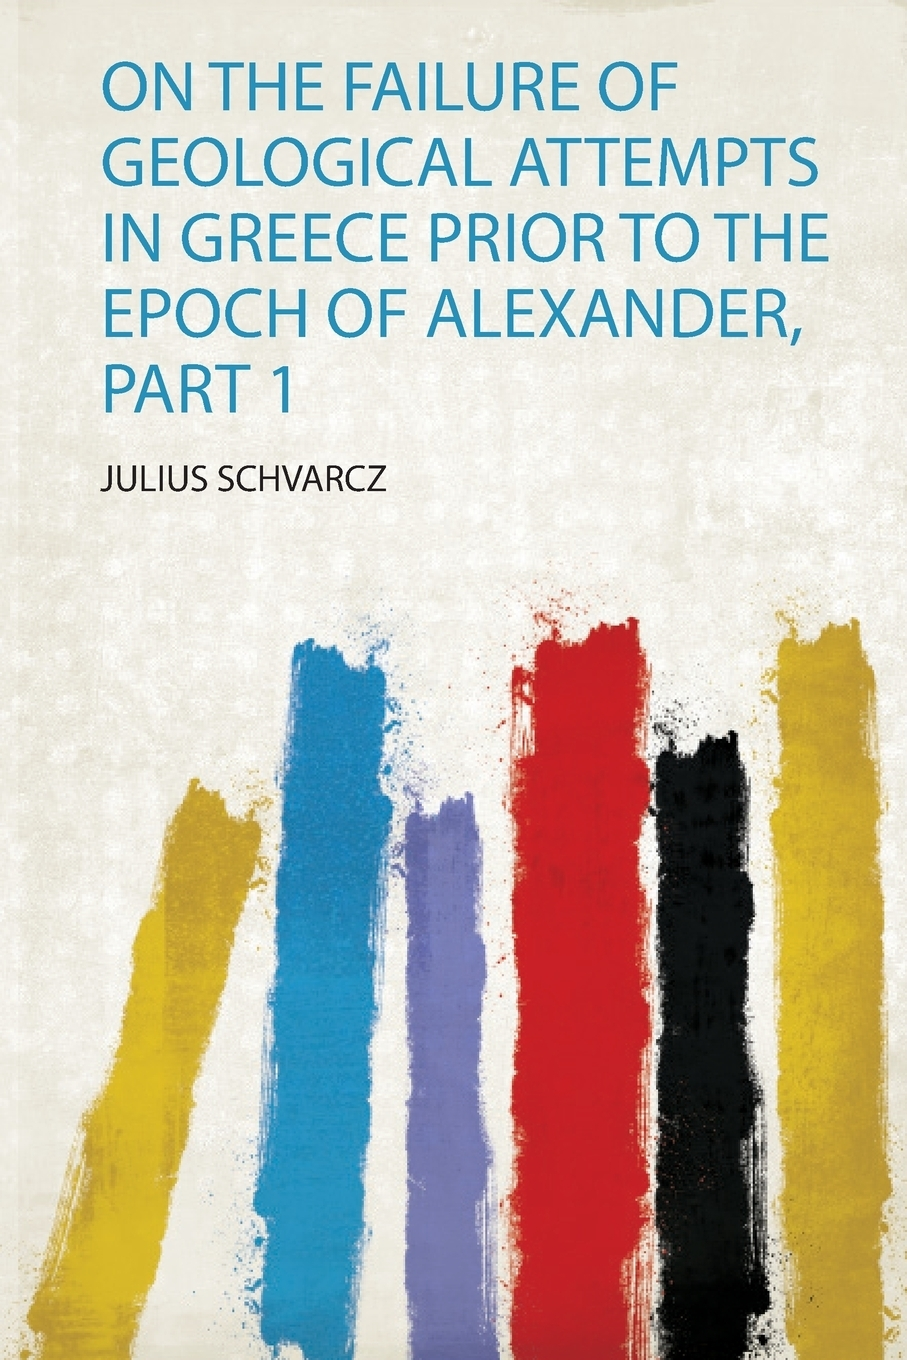 Julius Schvarcz. On the Failure of Geological Attempts in Greece Prior to the Epoch of Alexander, Part 1